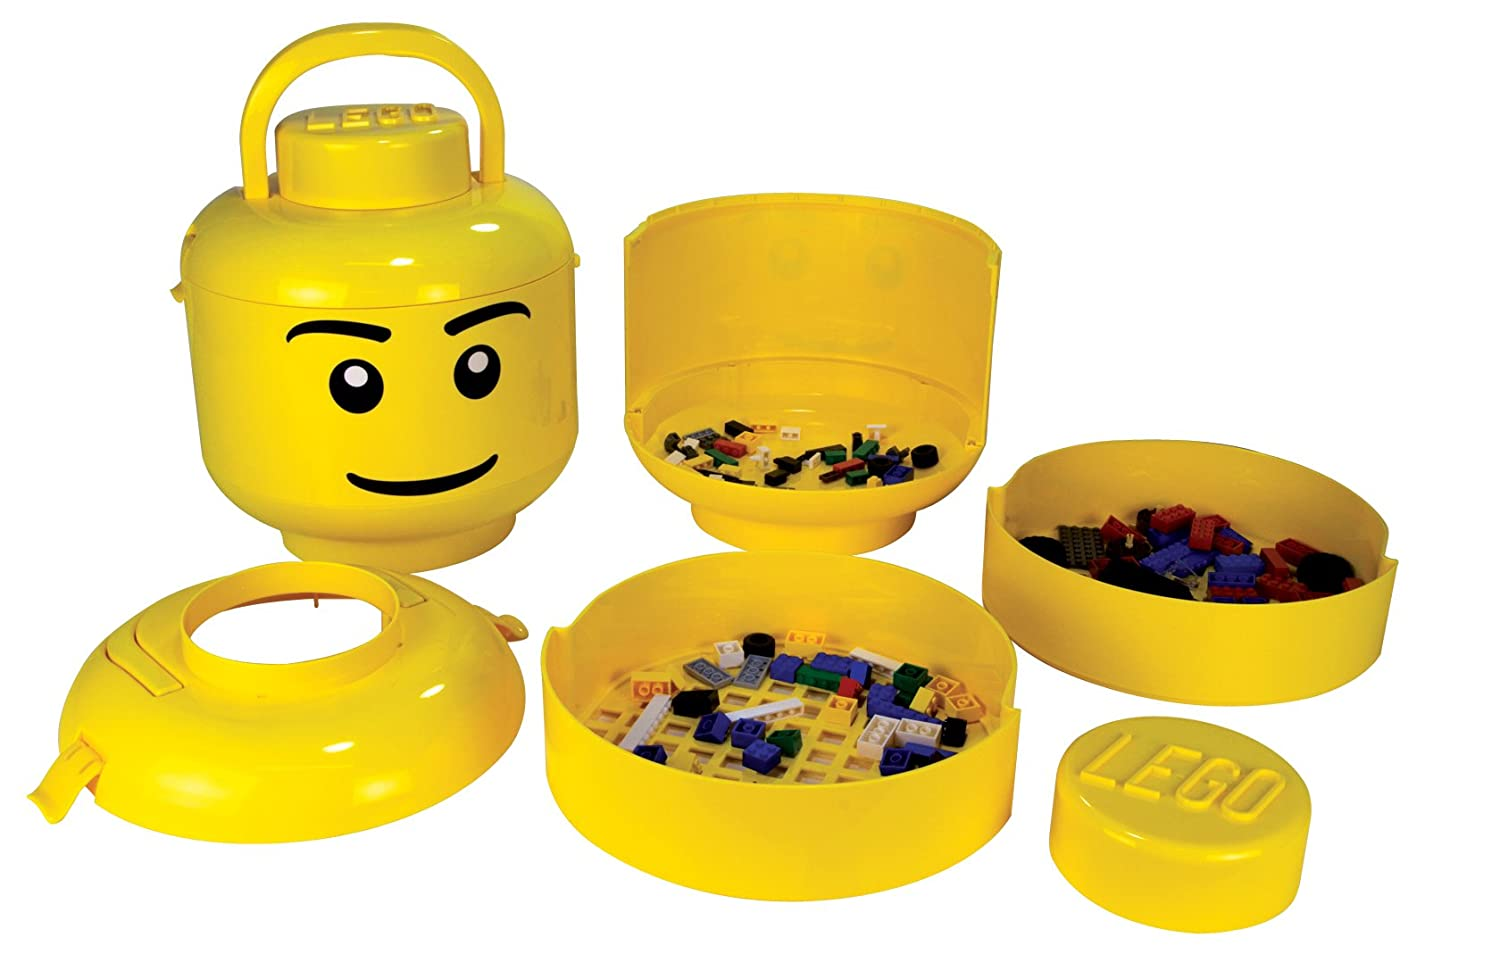 sc 1 st  Amazon.com & Amazon.com: Lego Sort and Store: Toys u0026 Games